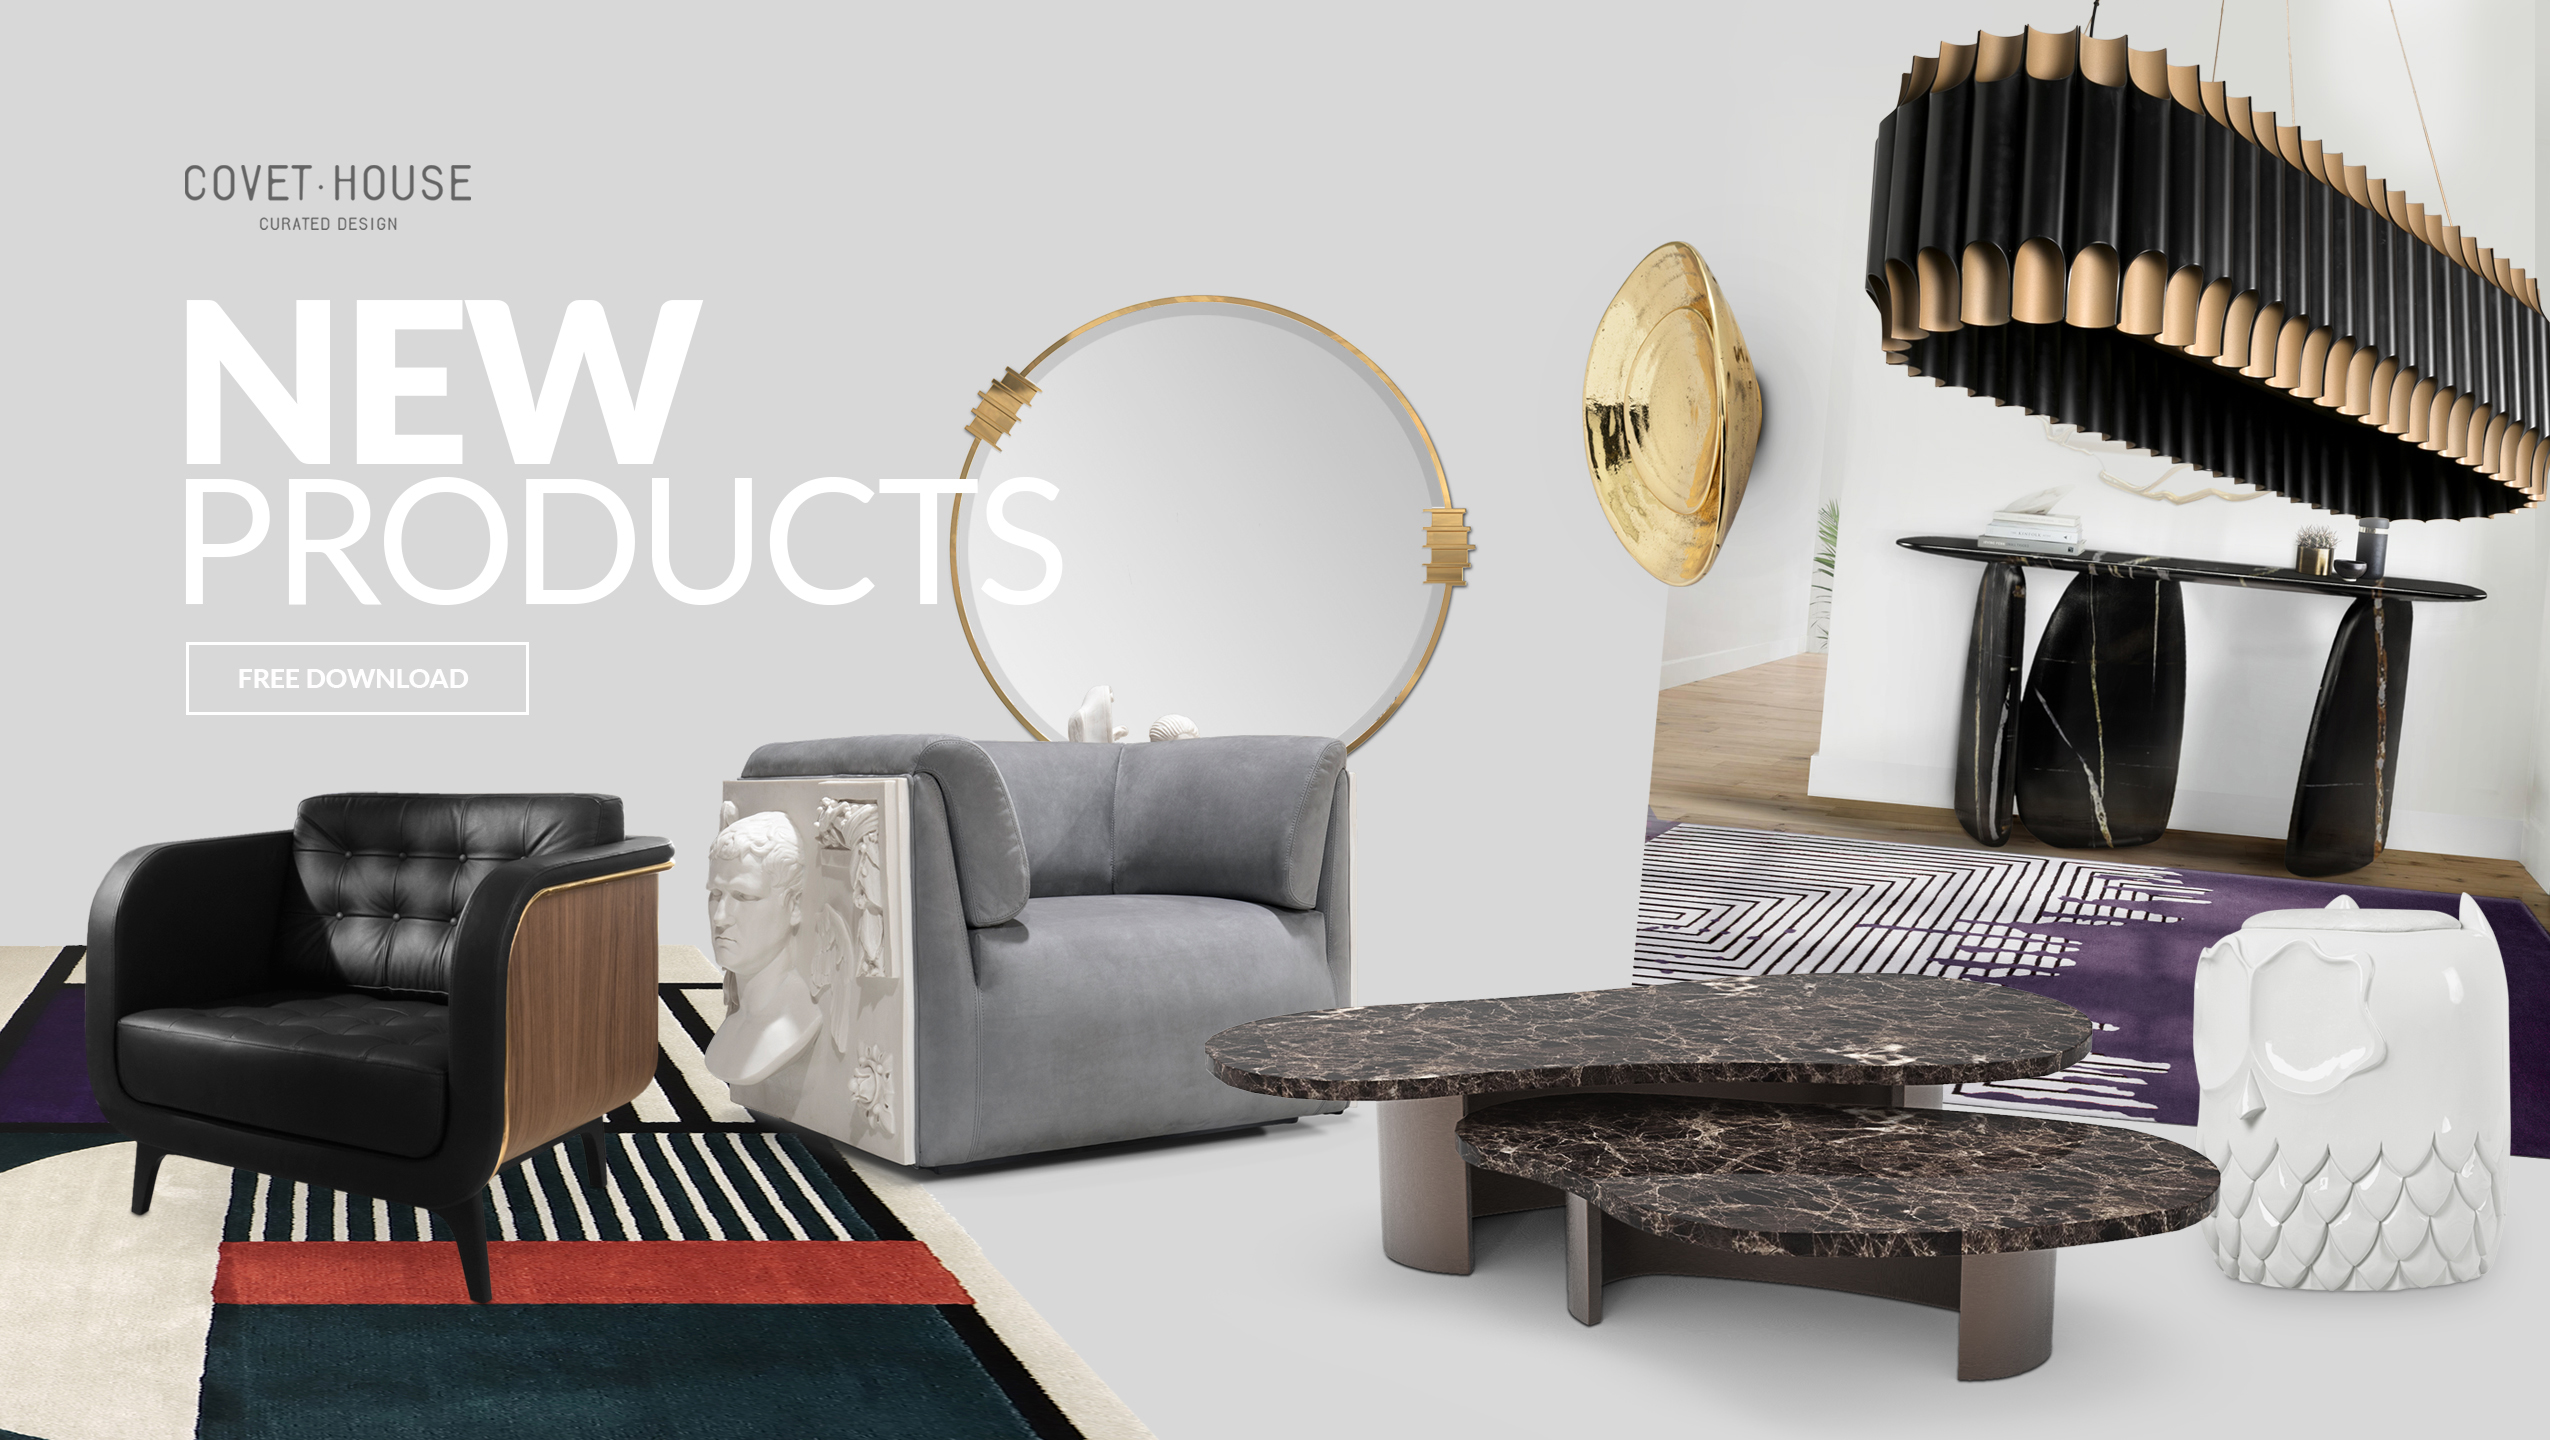 New Products 2020 maison et objet Find The Winners Of The CovetED Awards At Maison Et Objet newproducts cta1